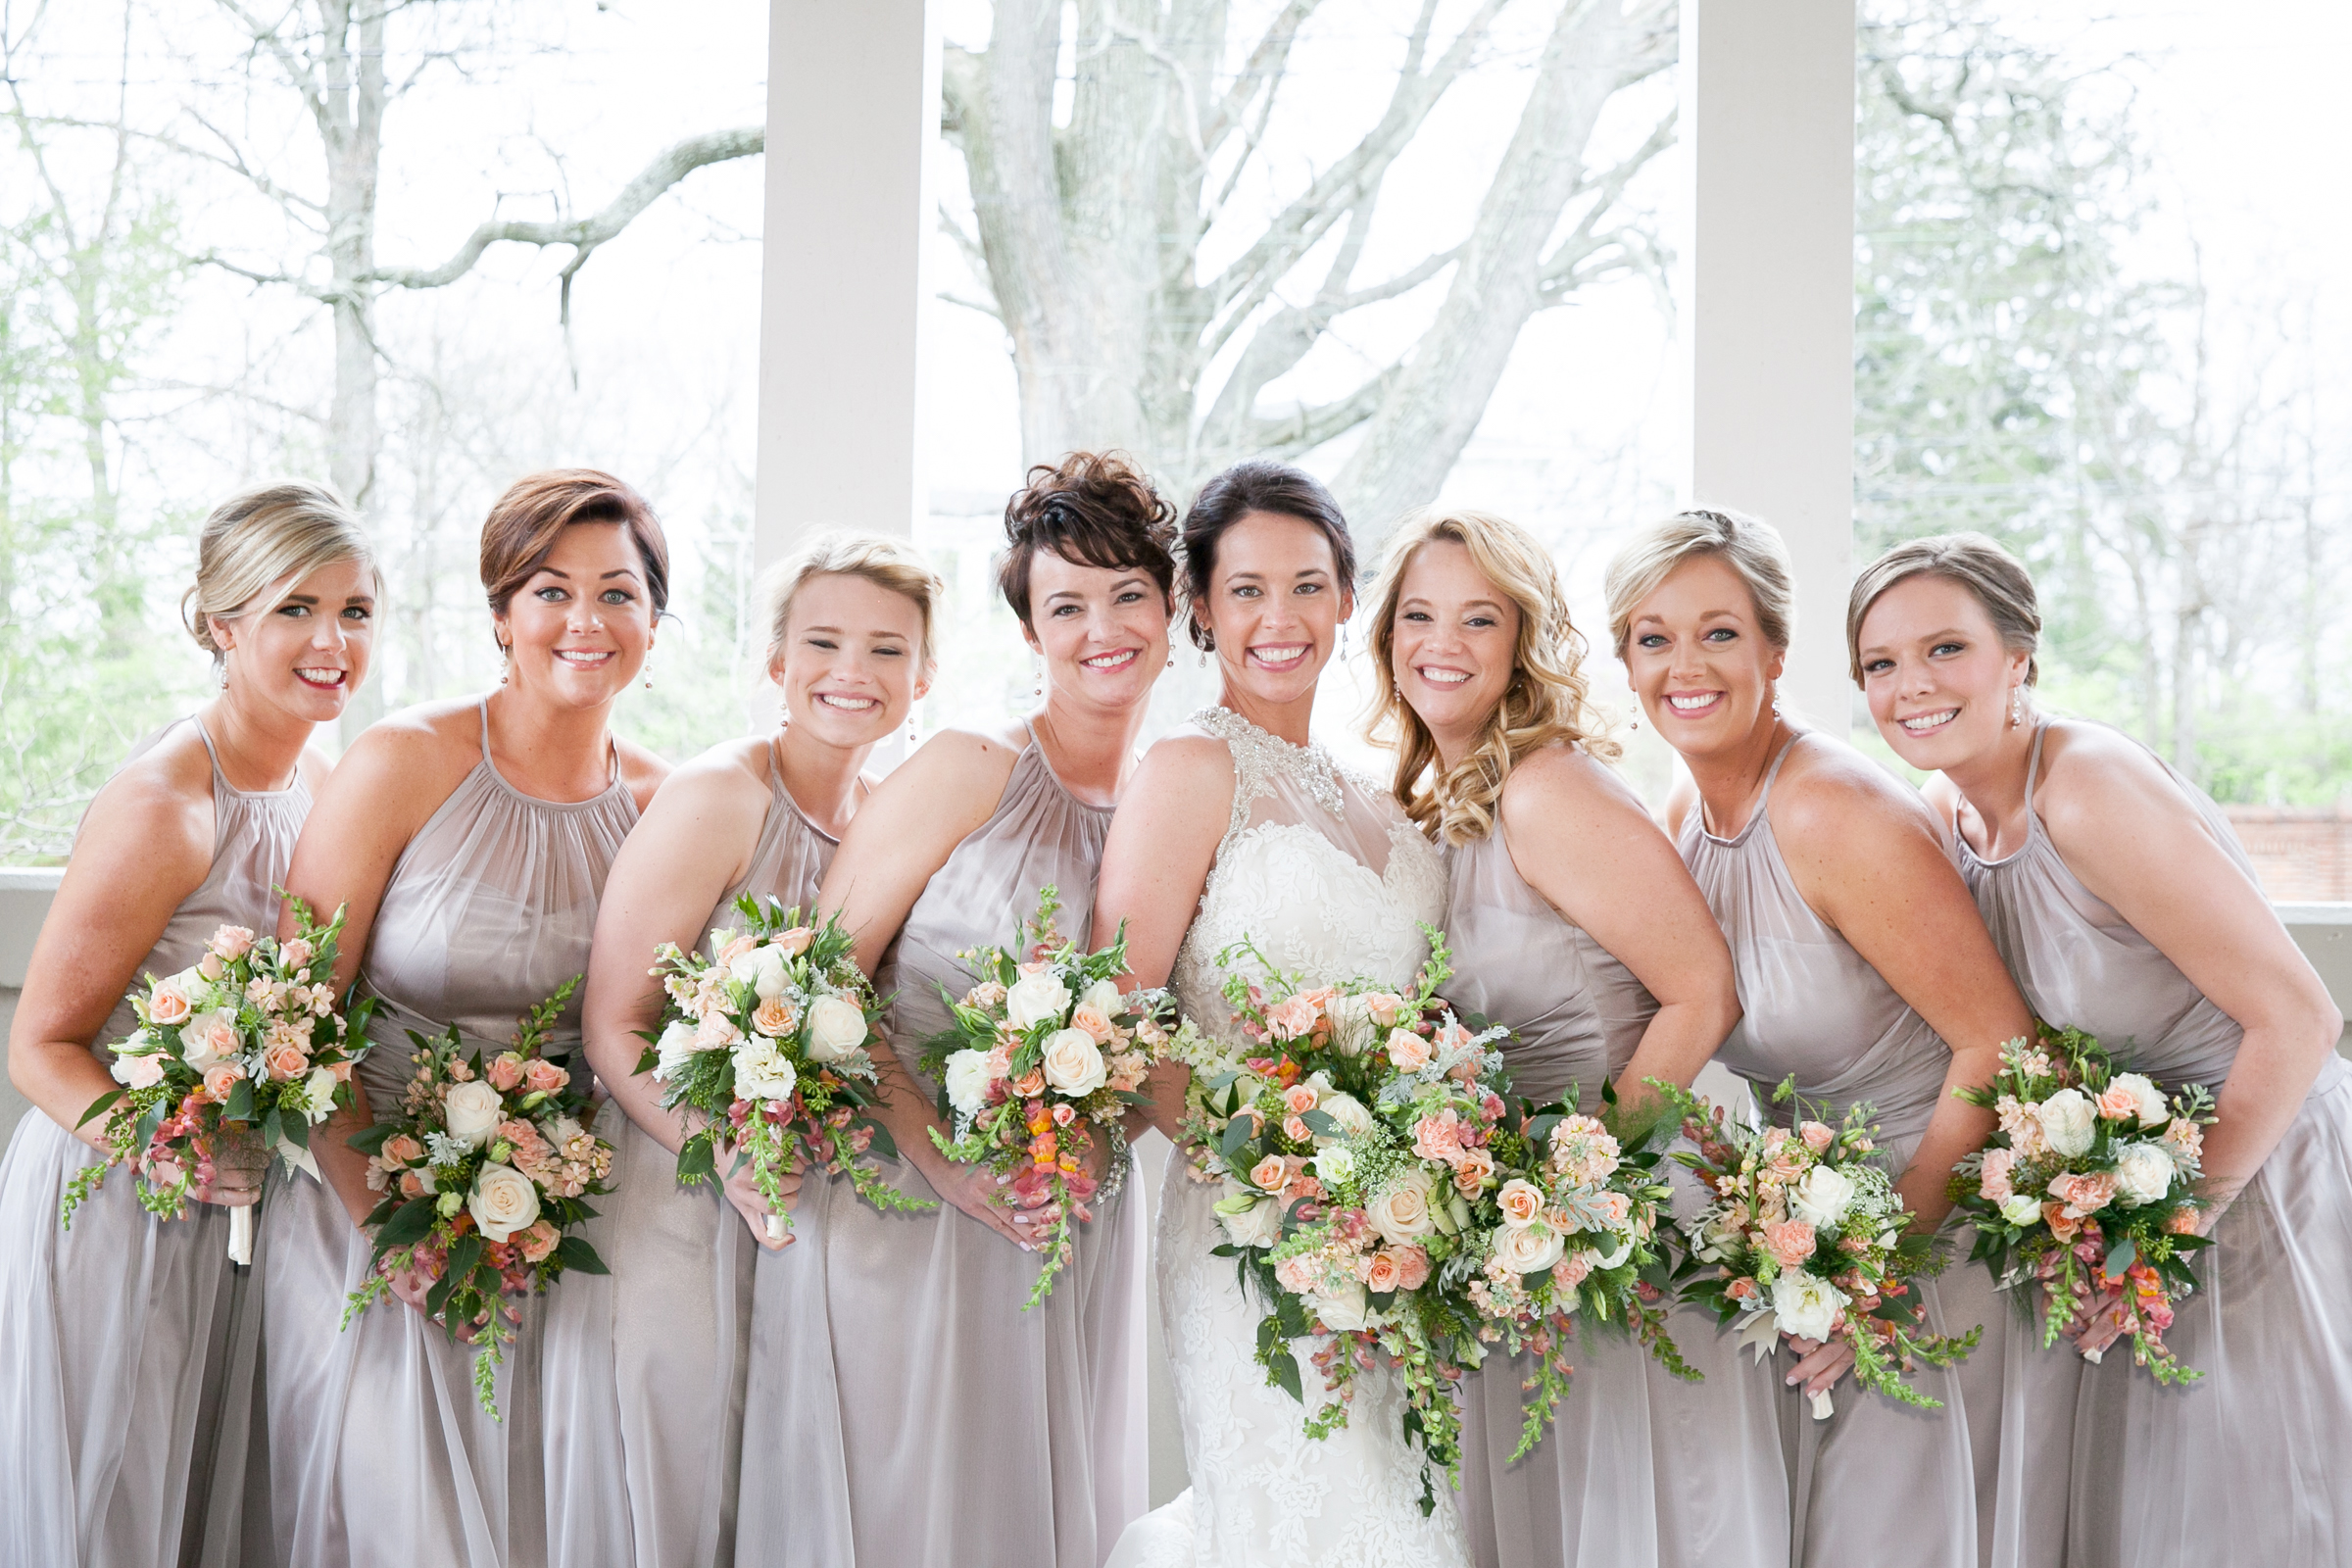 Image of bridal party